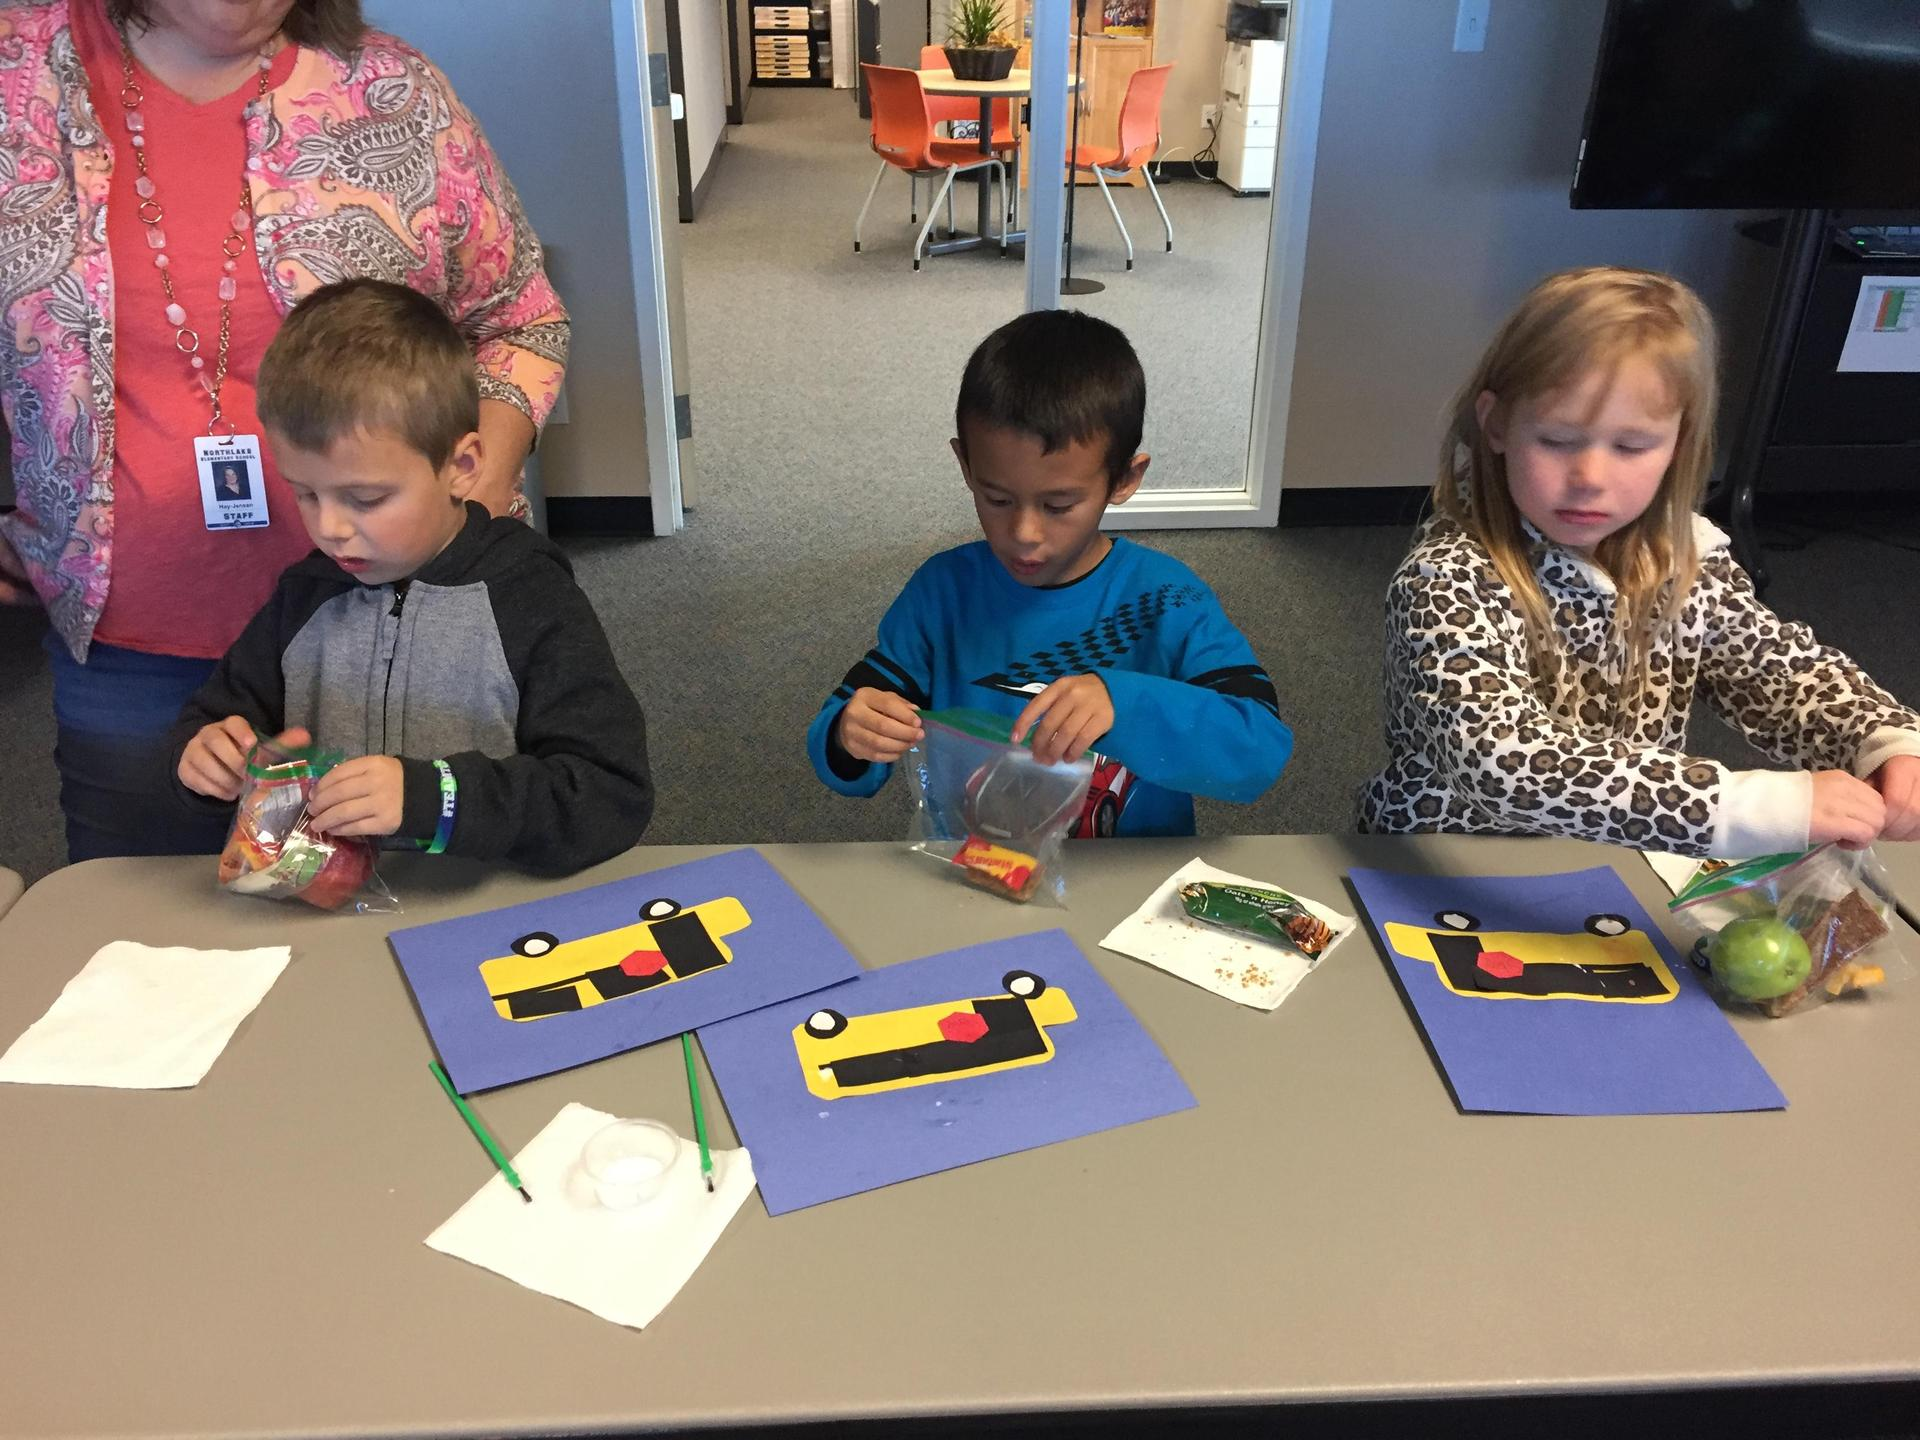 Northlake Elementary School Students art while touring the district office